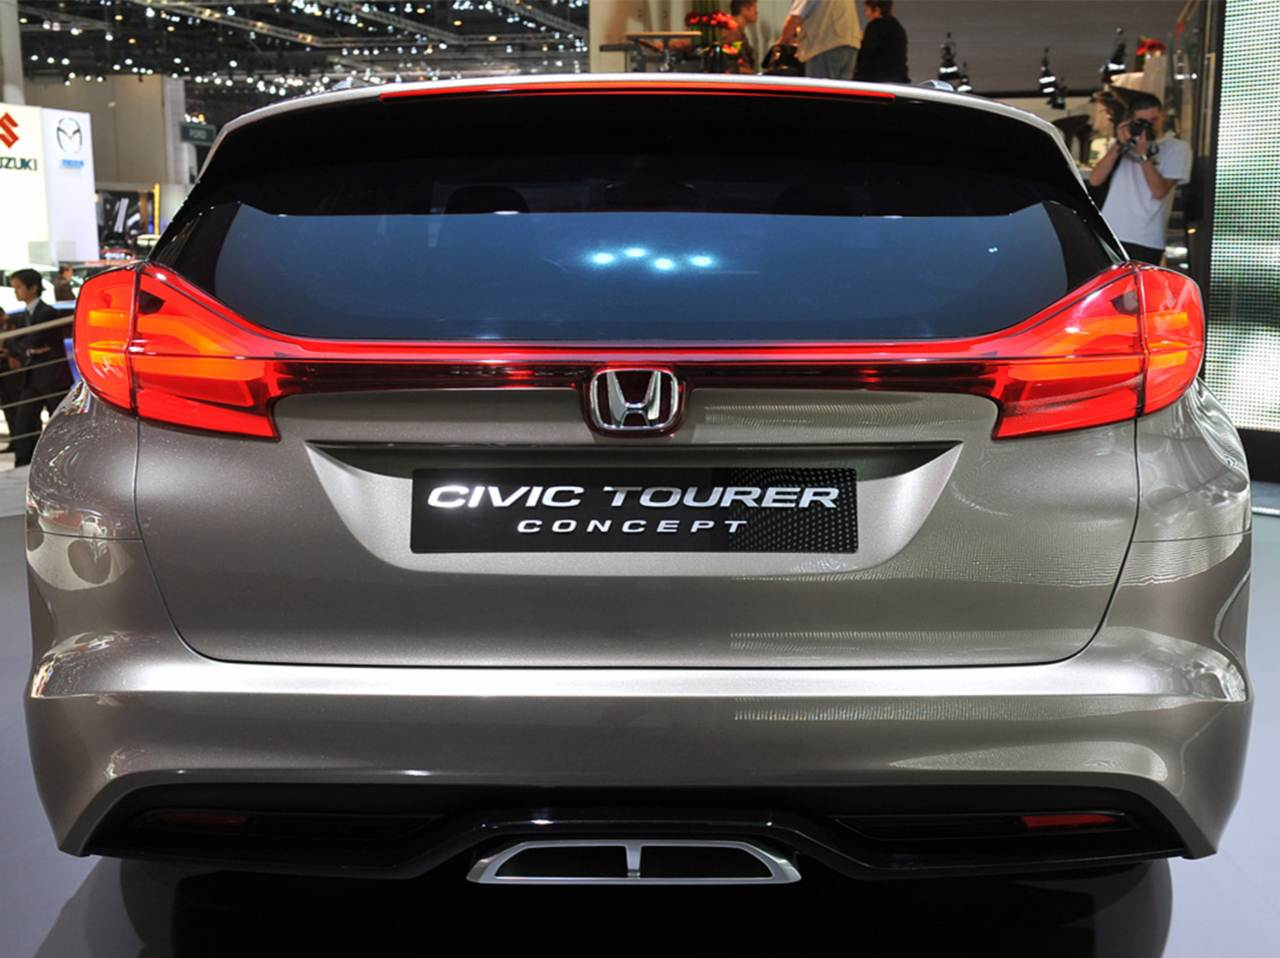 Captivating 2014 Honda Civic Tourer